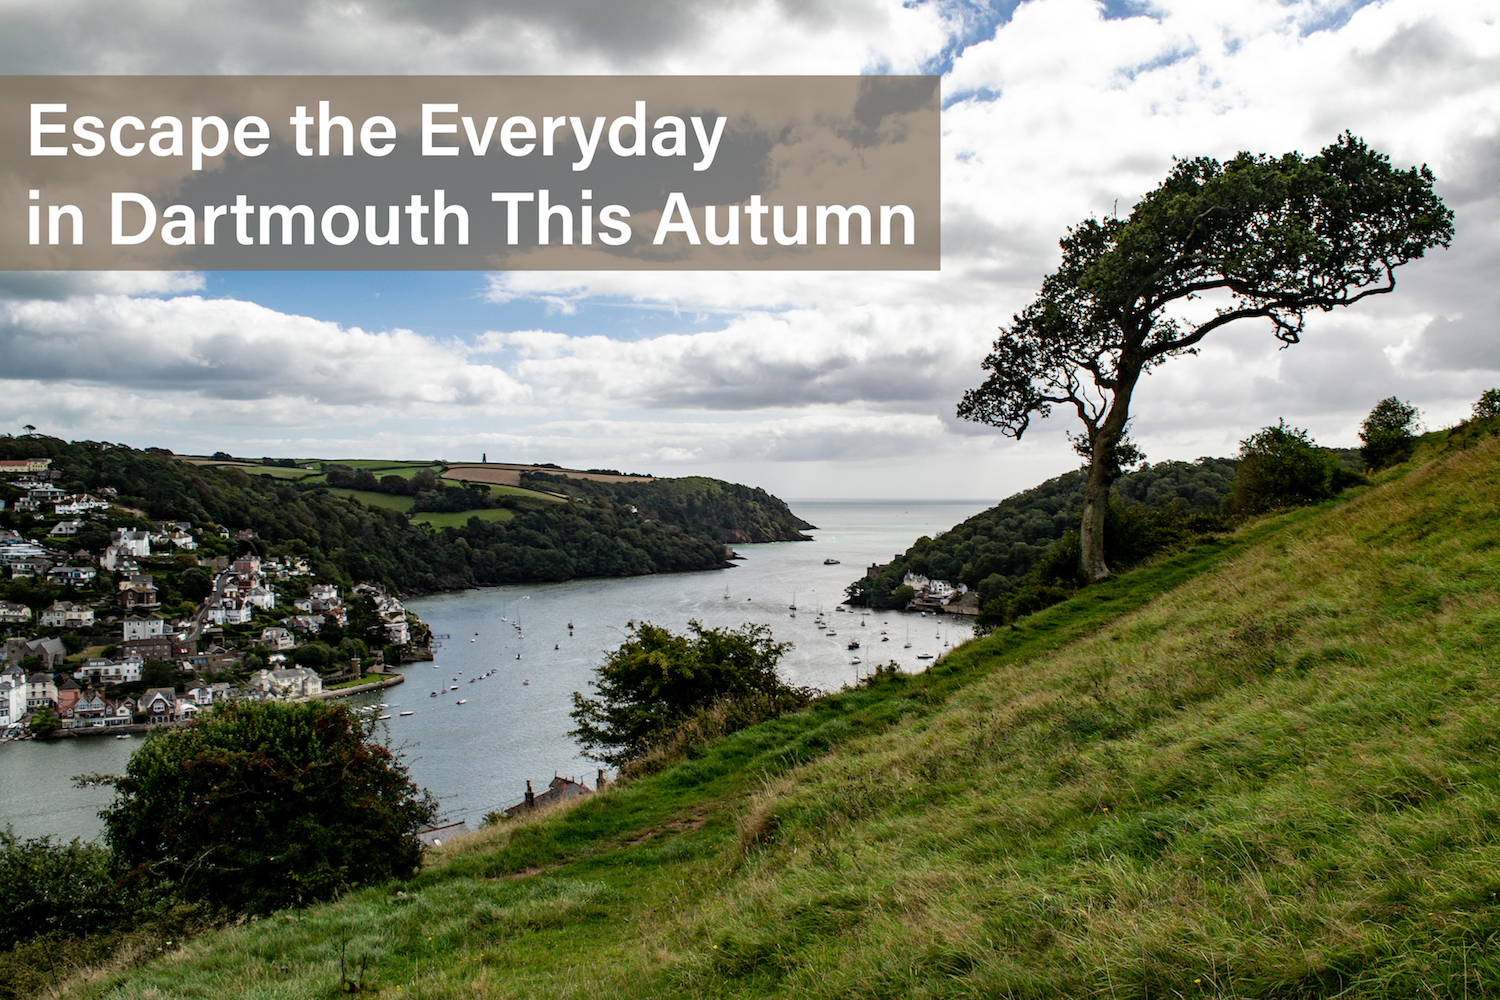 Escape the Everyday in Dartmouth